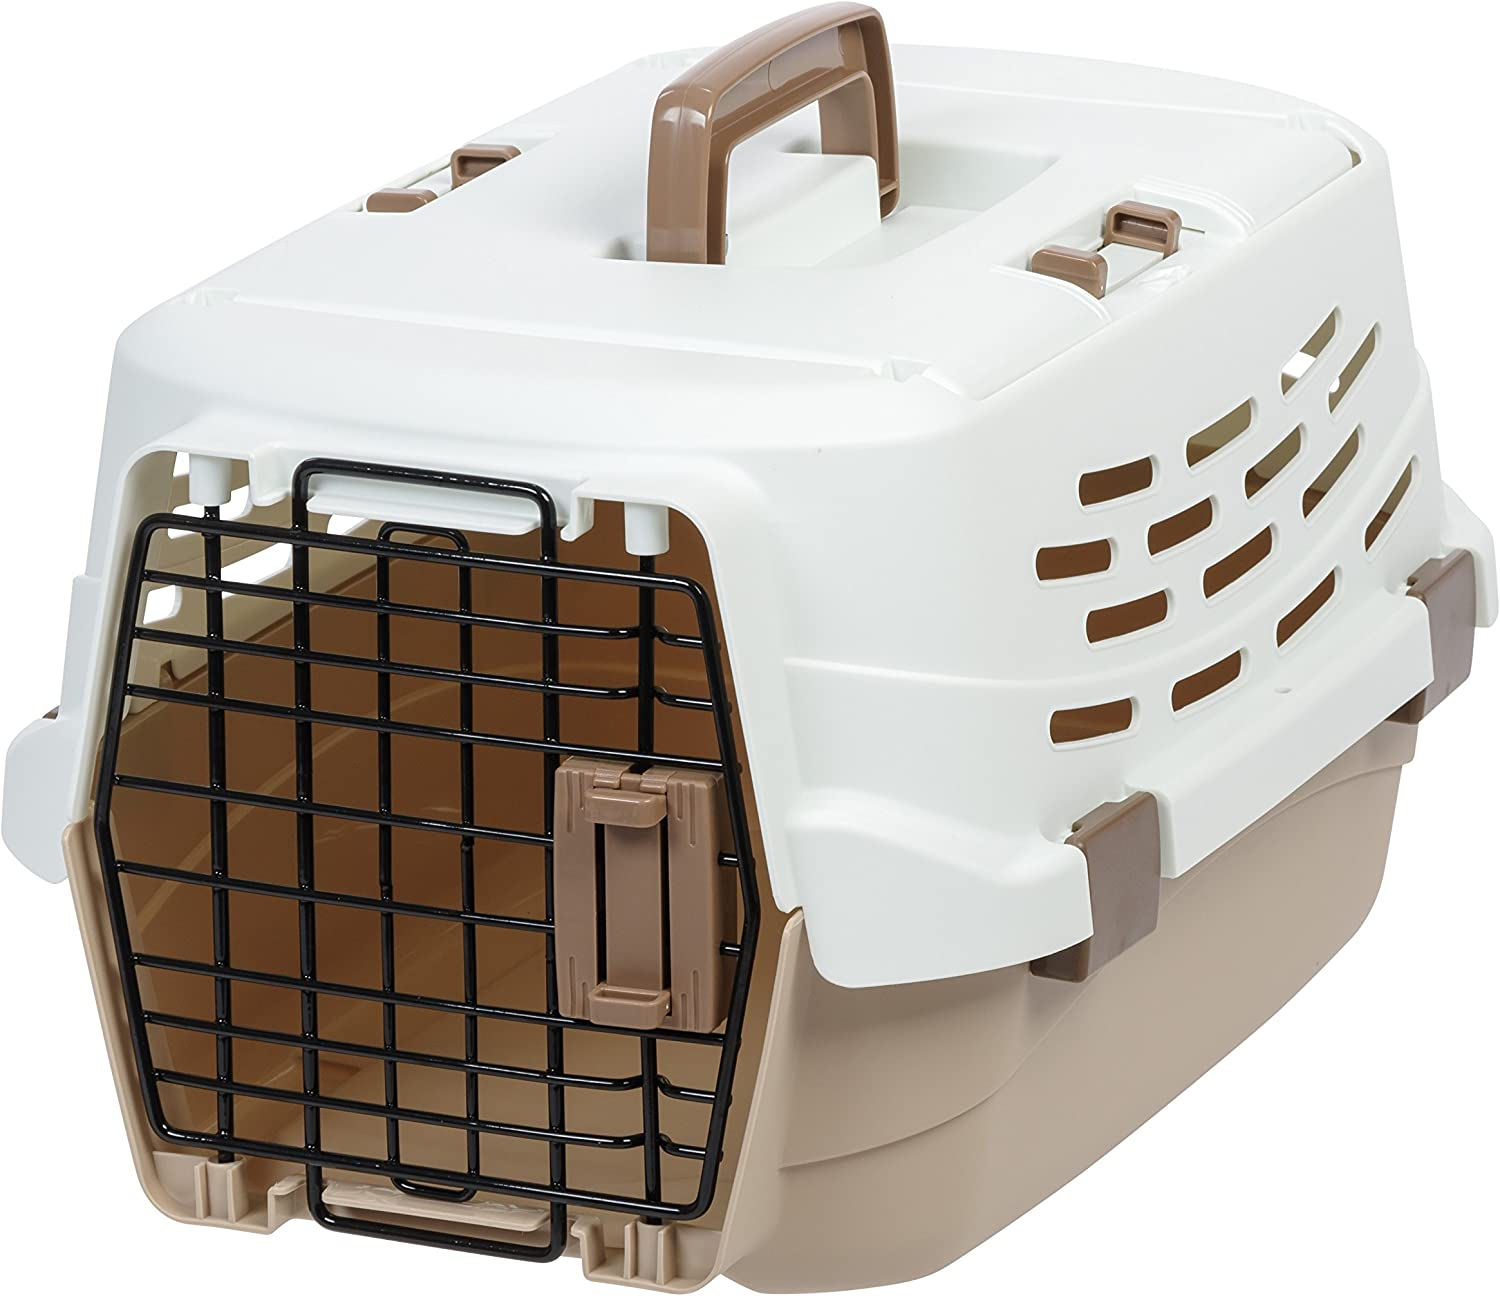 IRIS UPC490 Easy Access Pet Travel Carrier, Small, OffWhite Brown